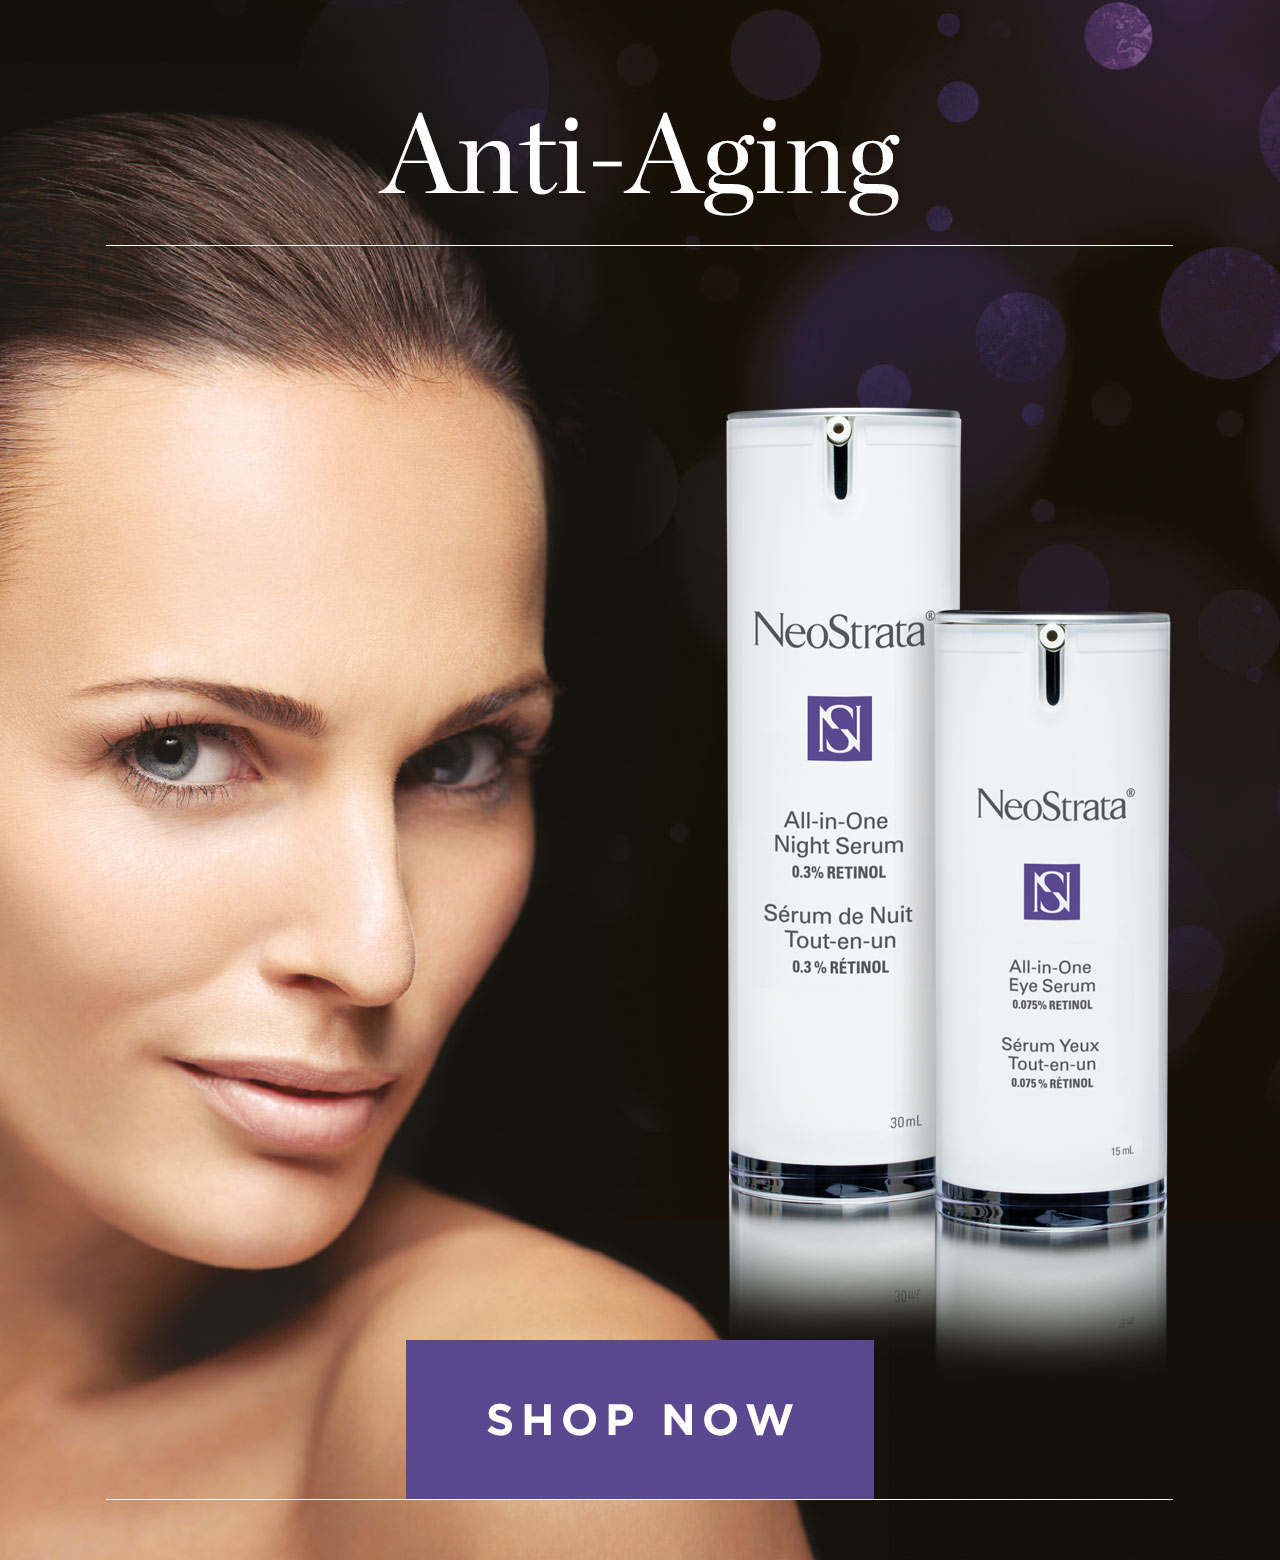 Anti-Aging Shop Now